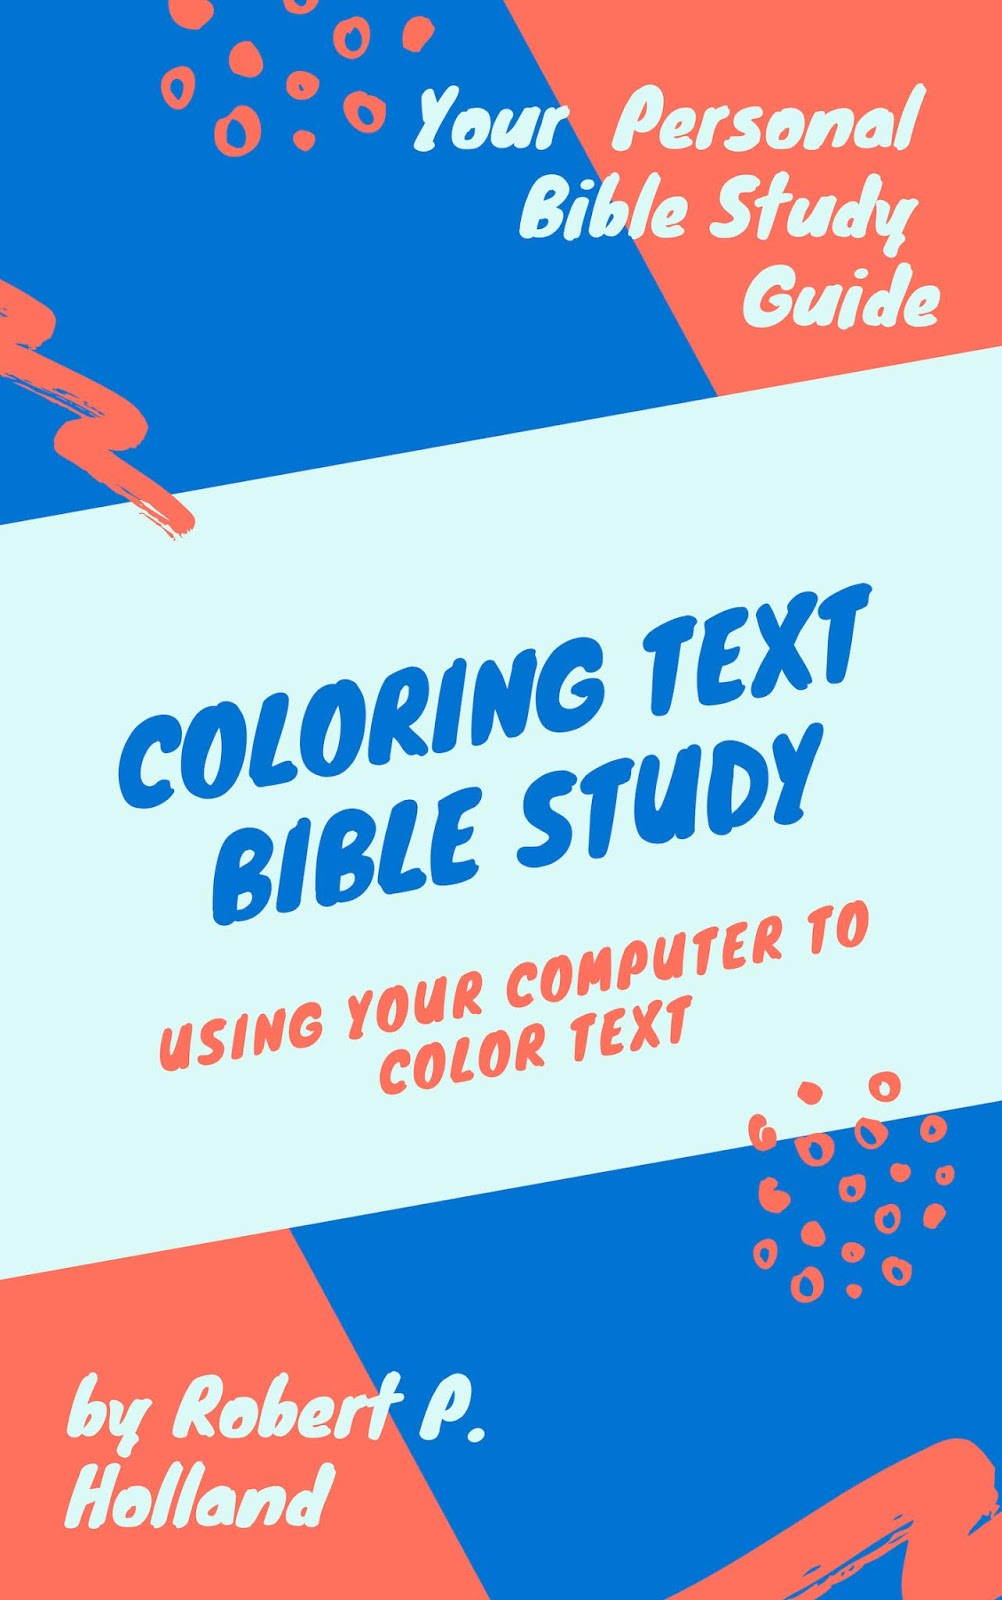 coloring text bible study